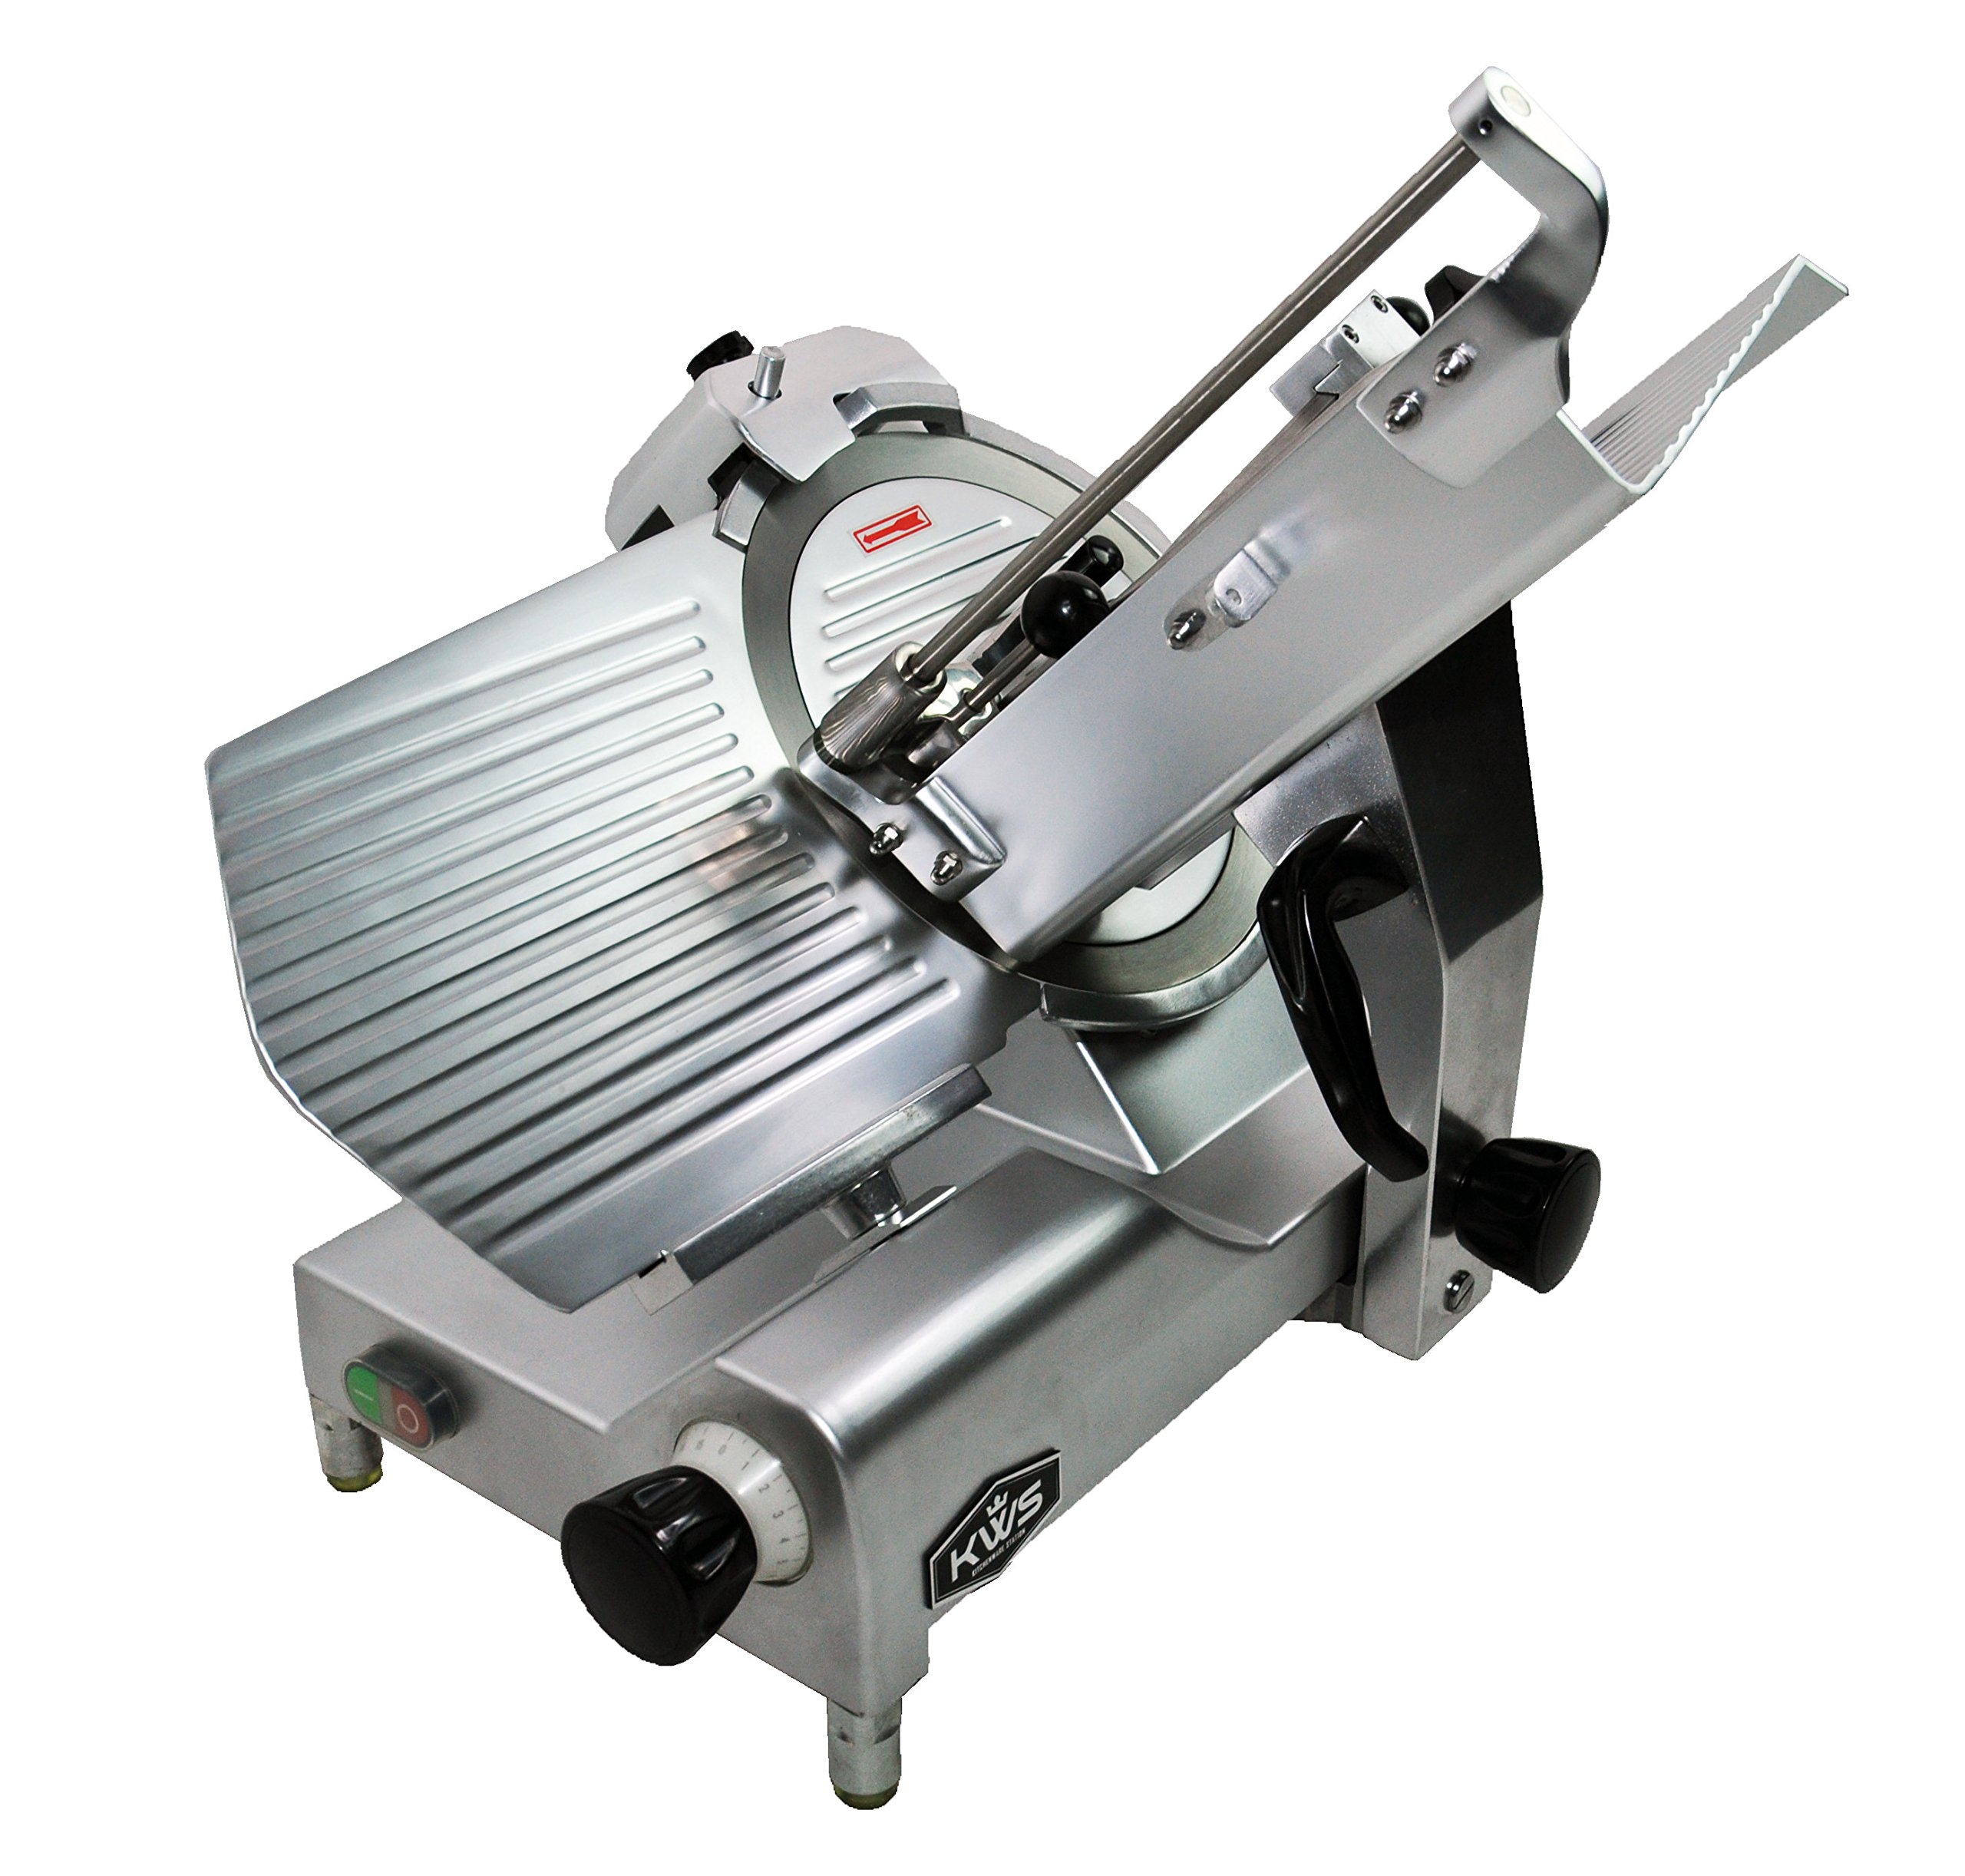 KWS Premium 450w Electric Meat Slicer 12'' Stainless Blade With Commercial Grade Carriage, Frozen Meat/ Cheese/ Food Slicer Low Noises